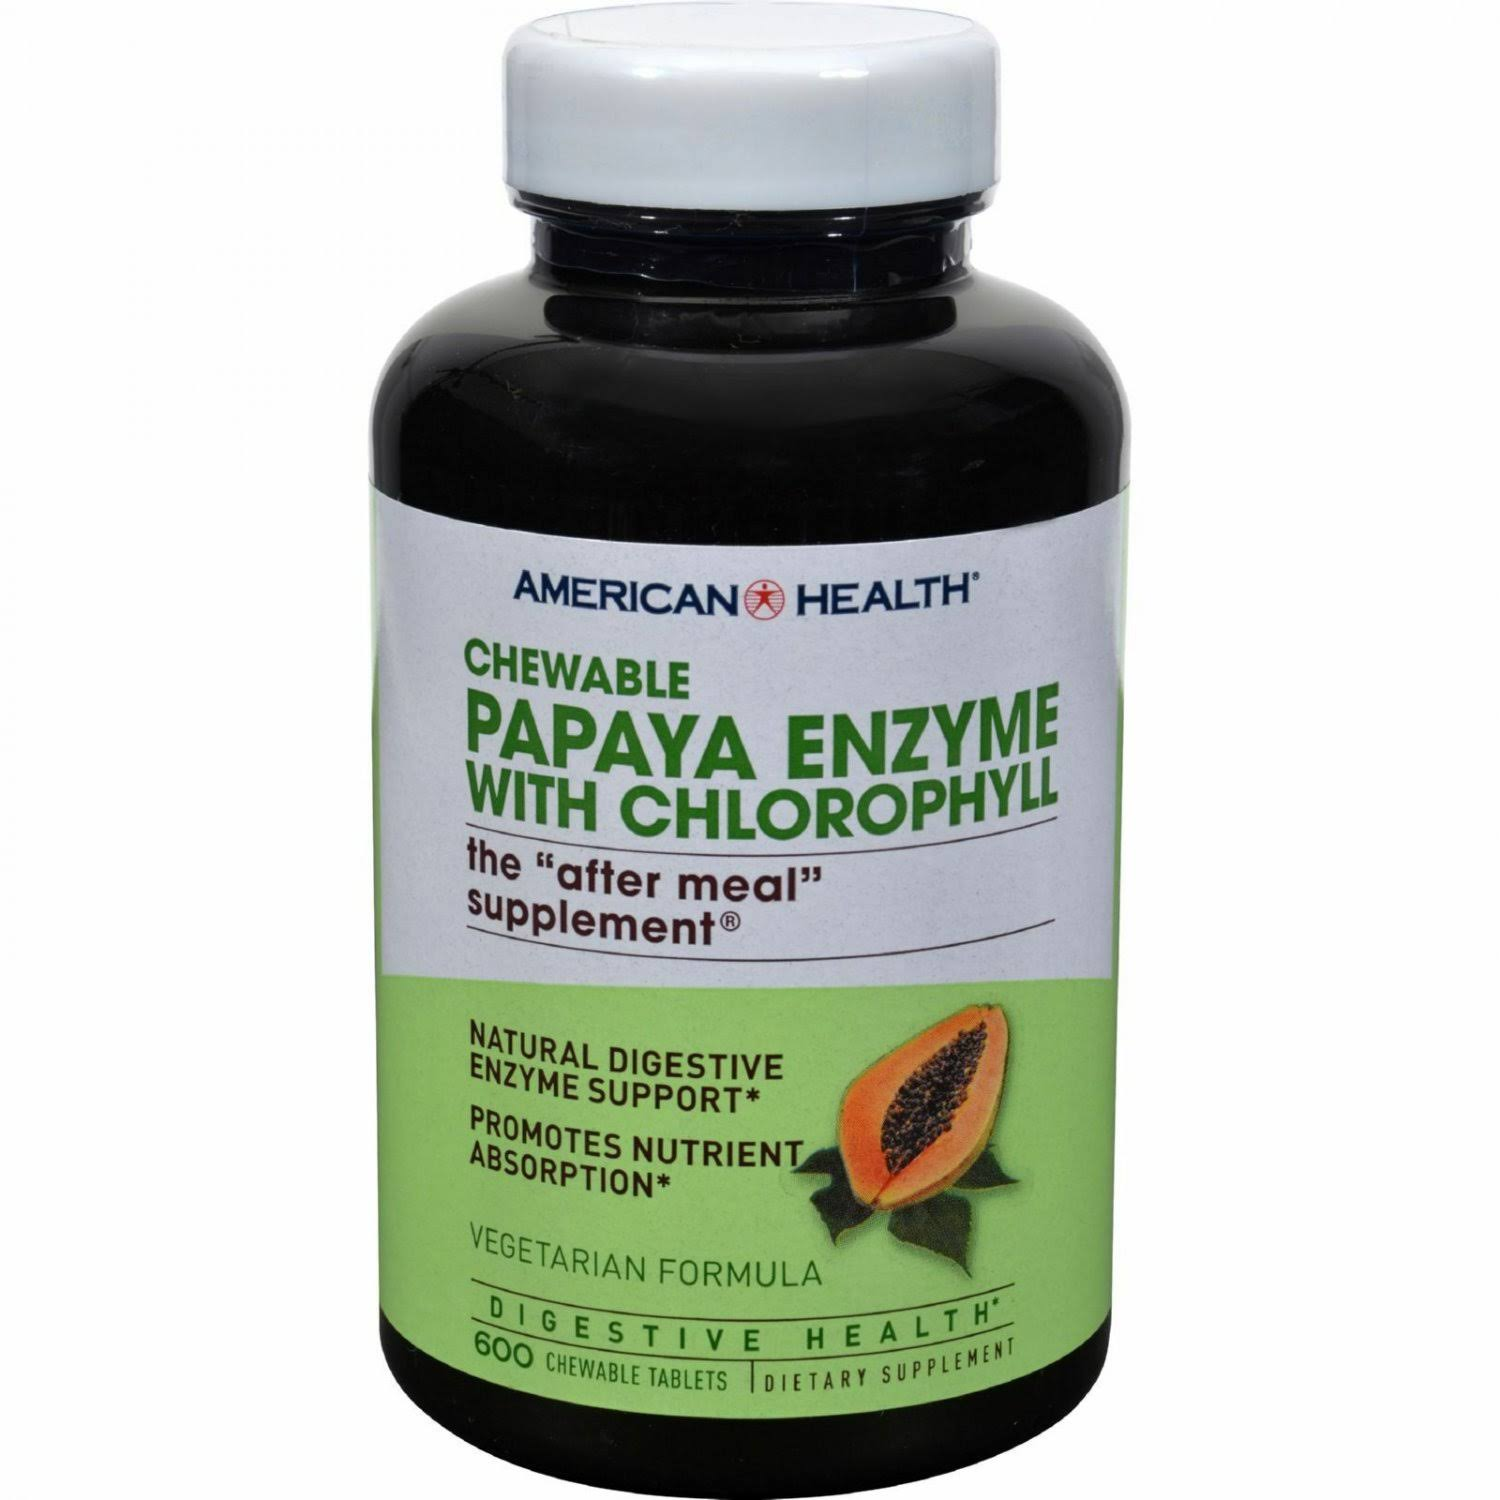 American Health Papaya Enzyme With Chlorophyll - 600 Chewable Tablets